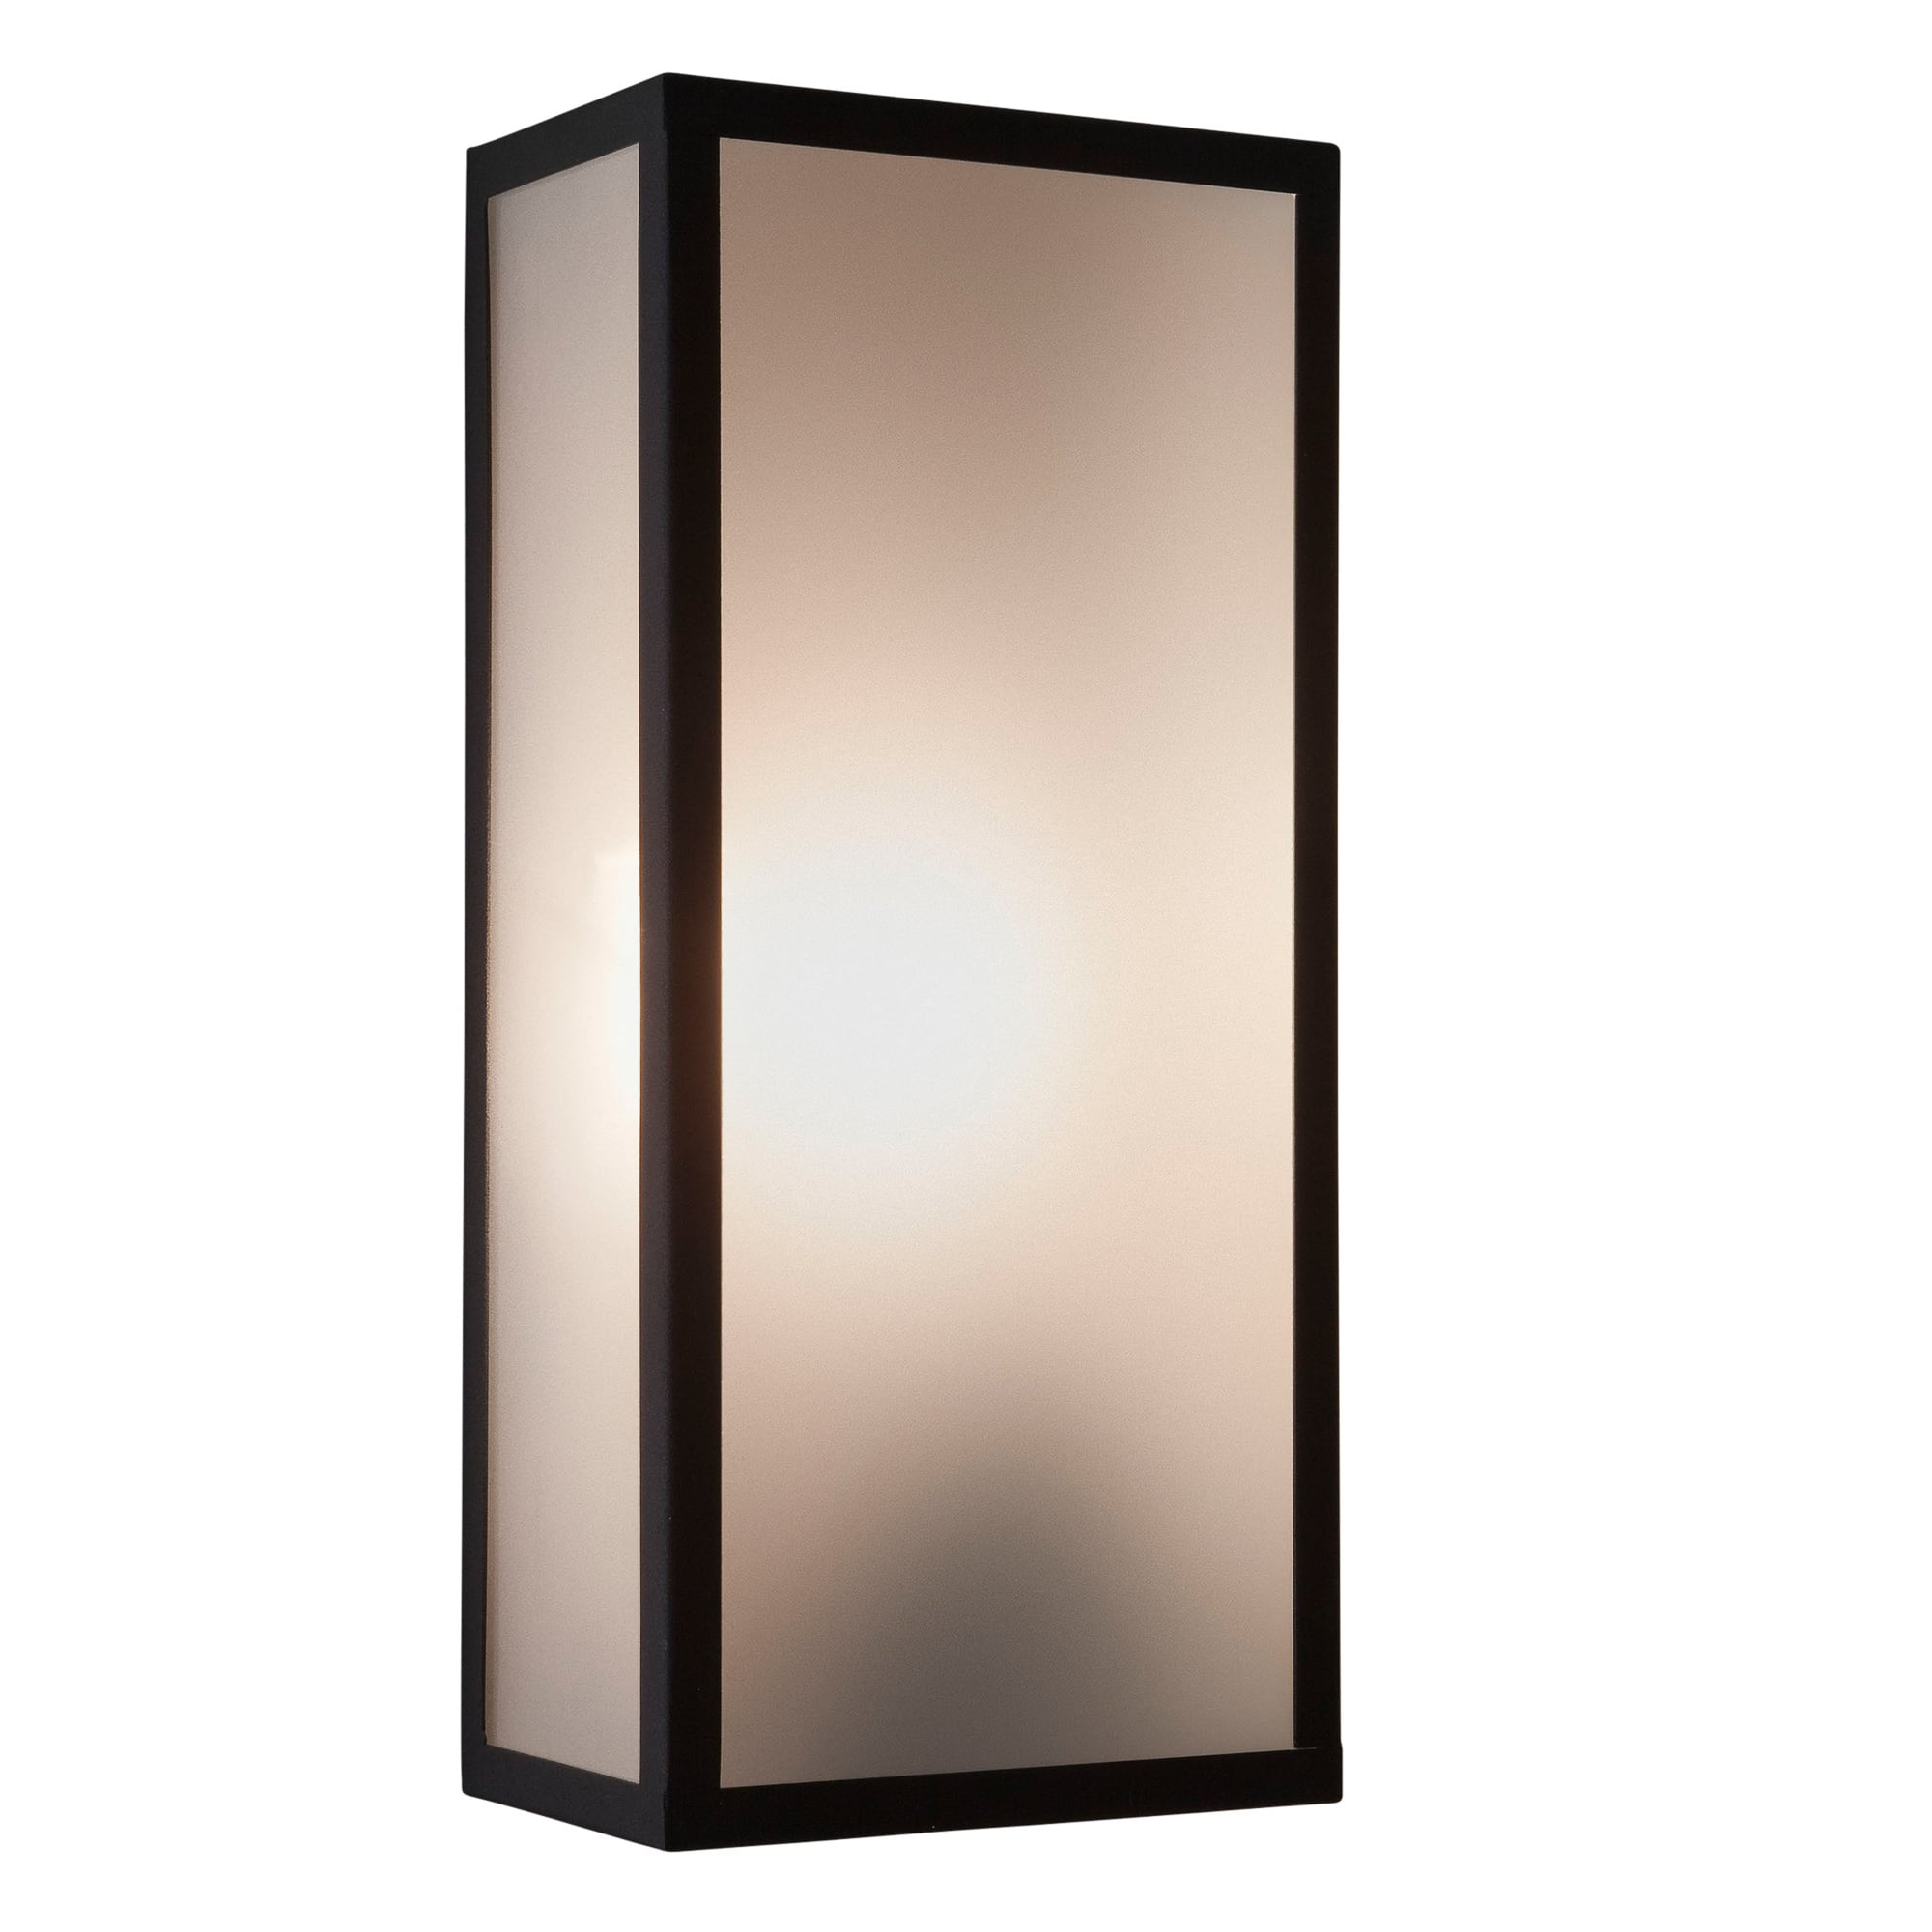 Black Exterior Wall Lantern In A Frosted Glass Panel